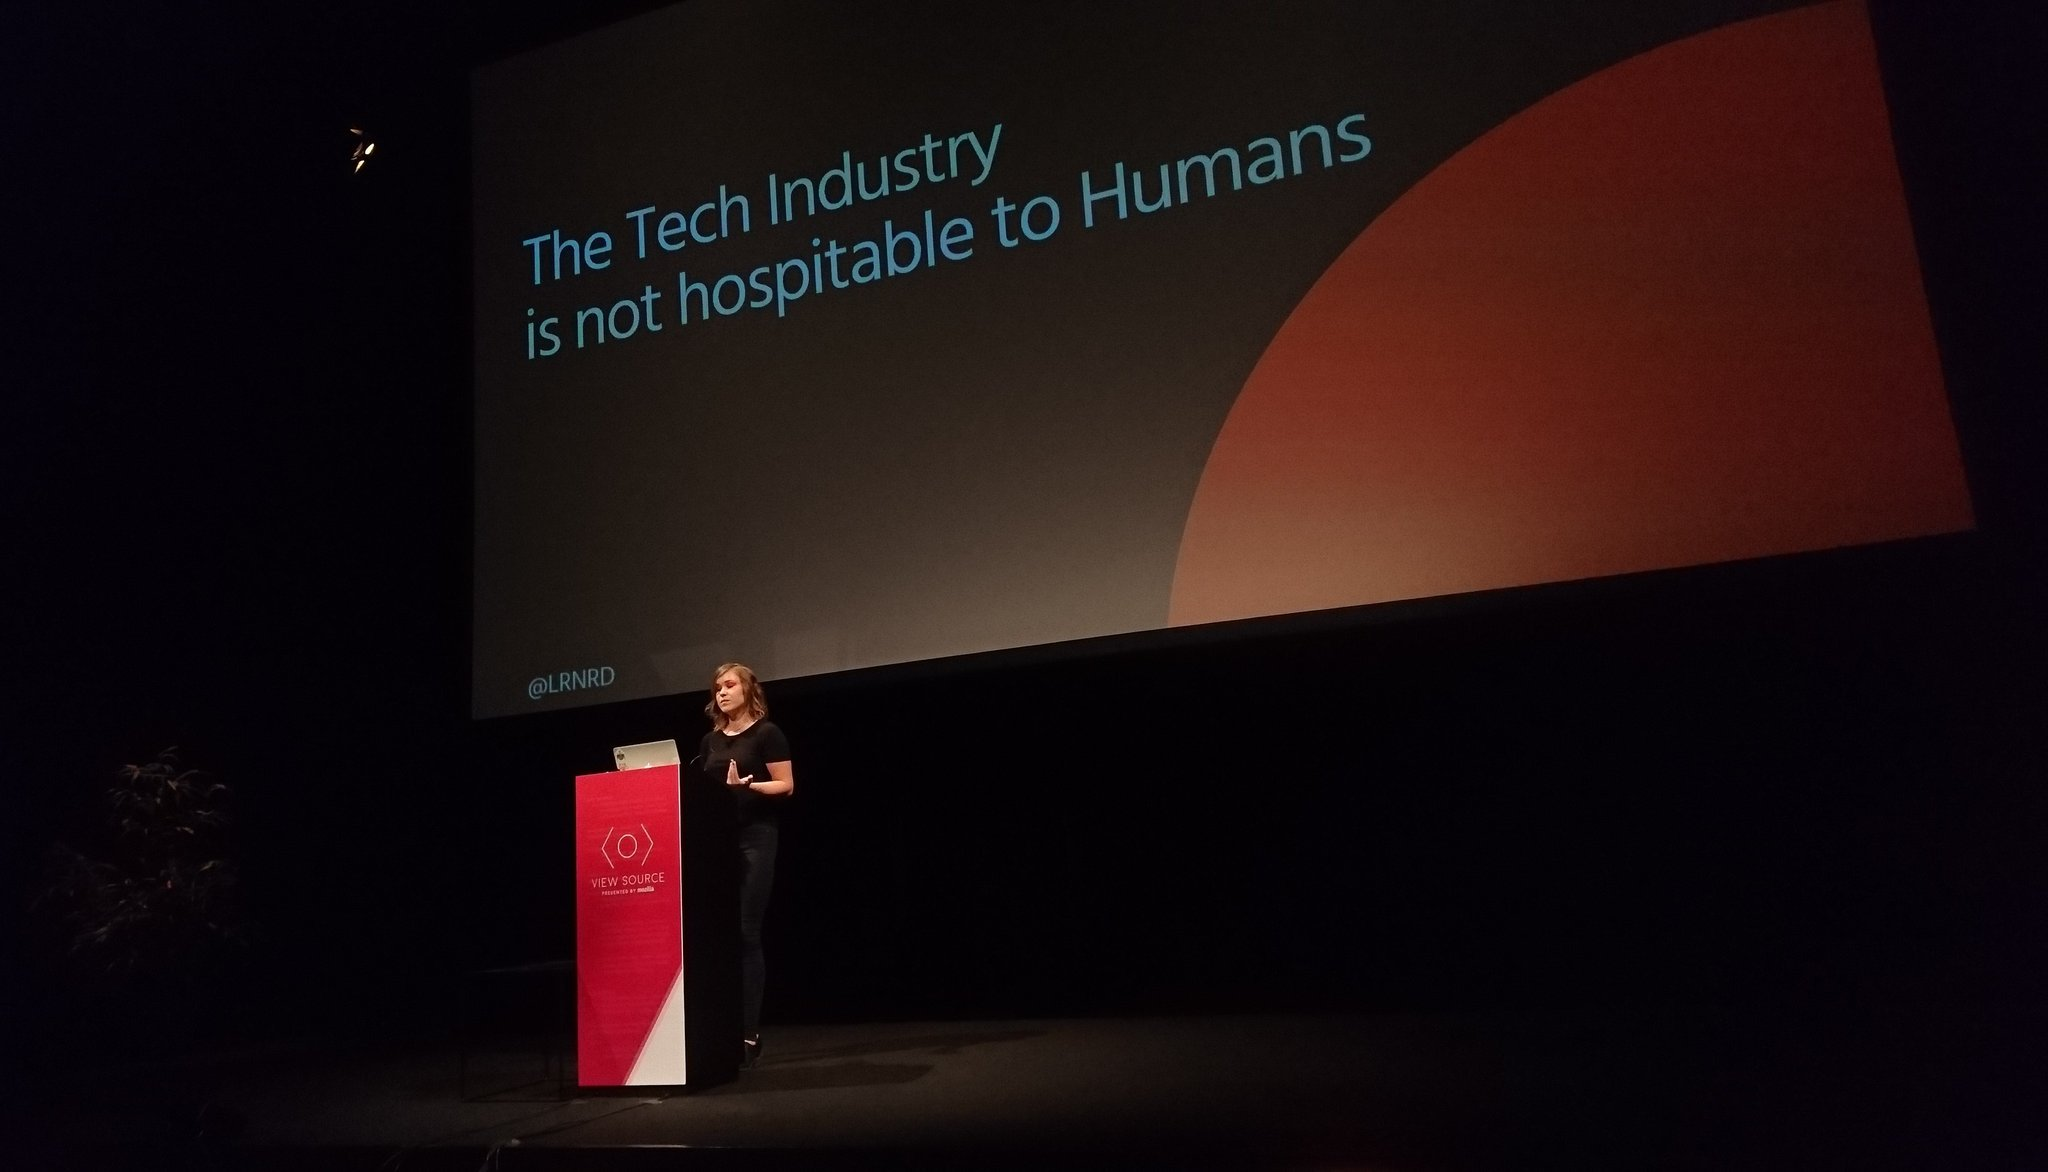 """""""The tech industry has become a planet of it's own — and, just like Mars, it's inhospitable for humans…"""" @lrnrd https://t.co/jV4c8i4jJU"""